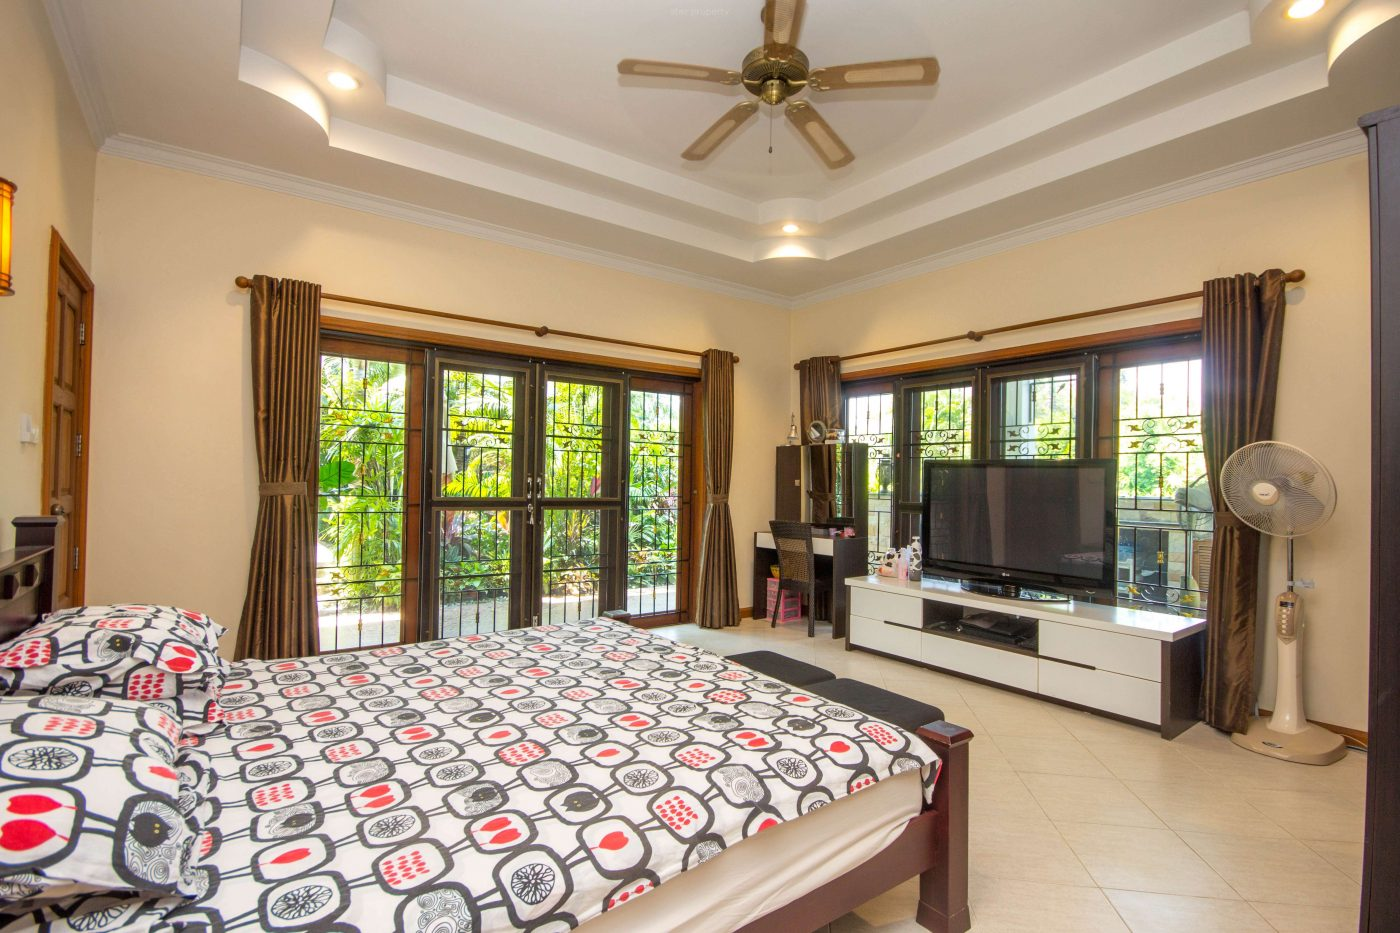 3 bedroom condo for sale